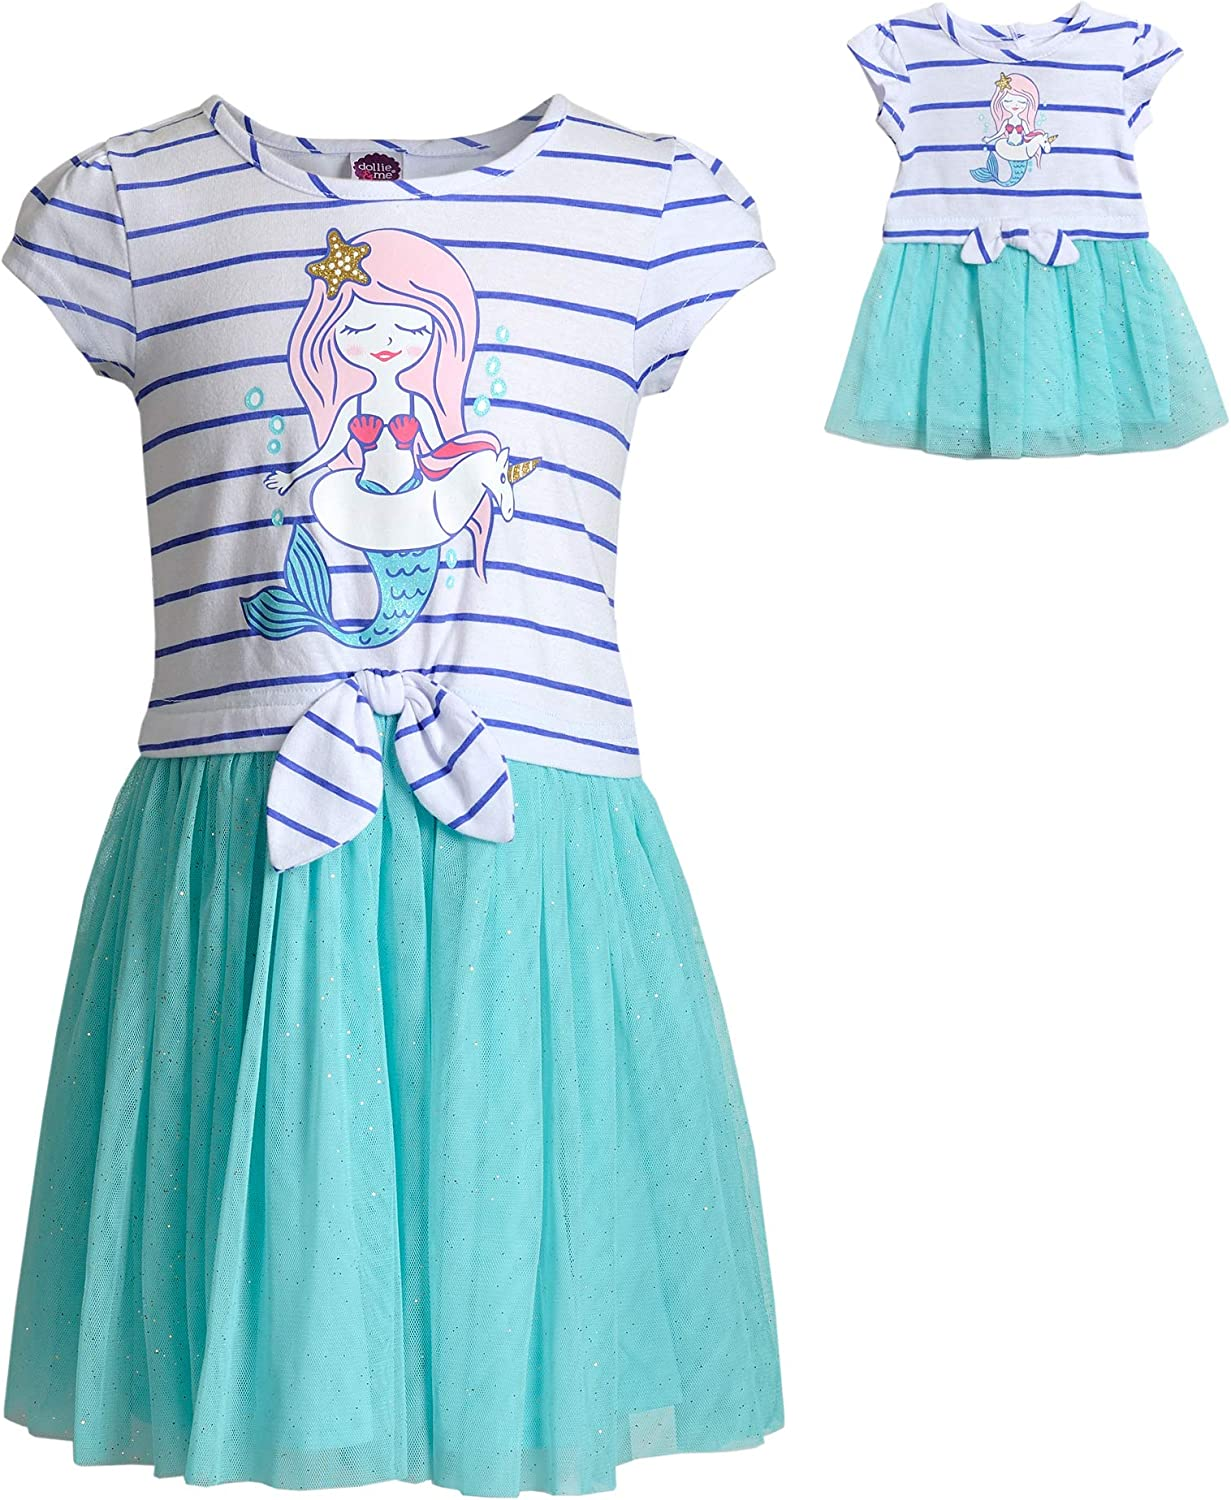 Dollie & Me Mermaid Dress Set with Matching Outfit-Girl & 7 Inch Doll  Clothes